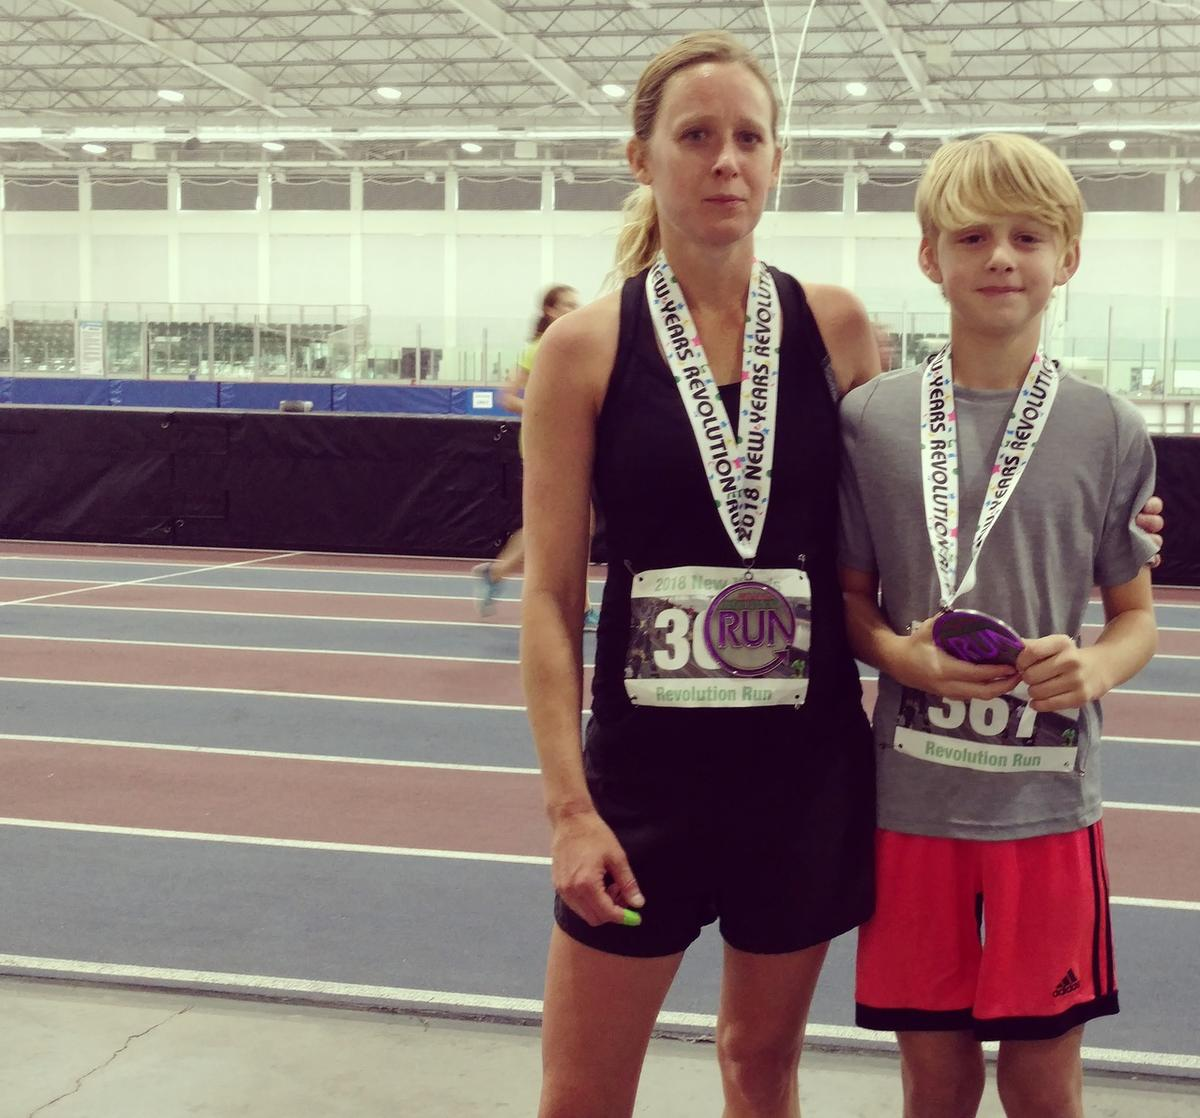 Arianne Brown stands with her son Ace after running the New Year's Revolution Run together.